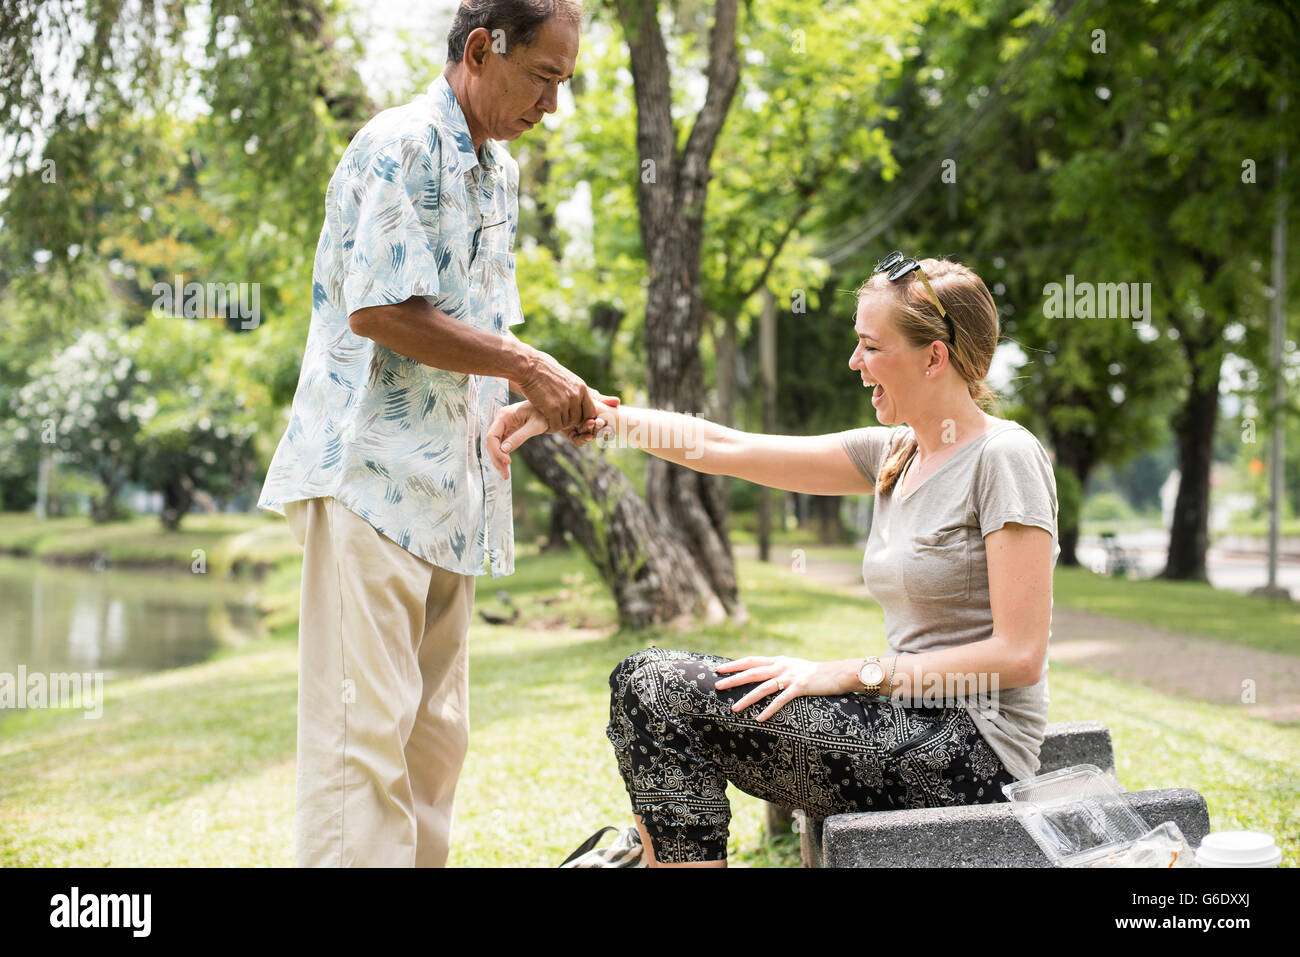 A man massages a woman's wrist while sitting in Lumphini Park on April 23, 2015. - Stock Image